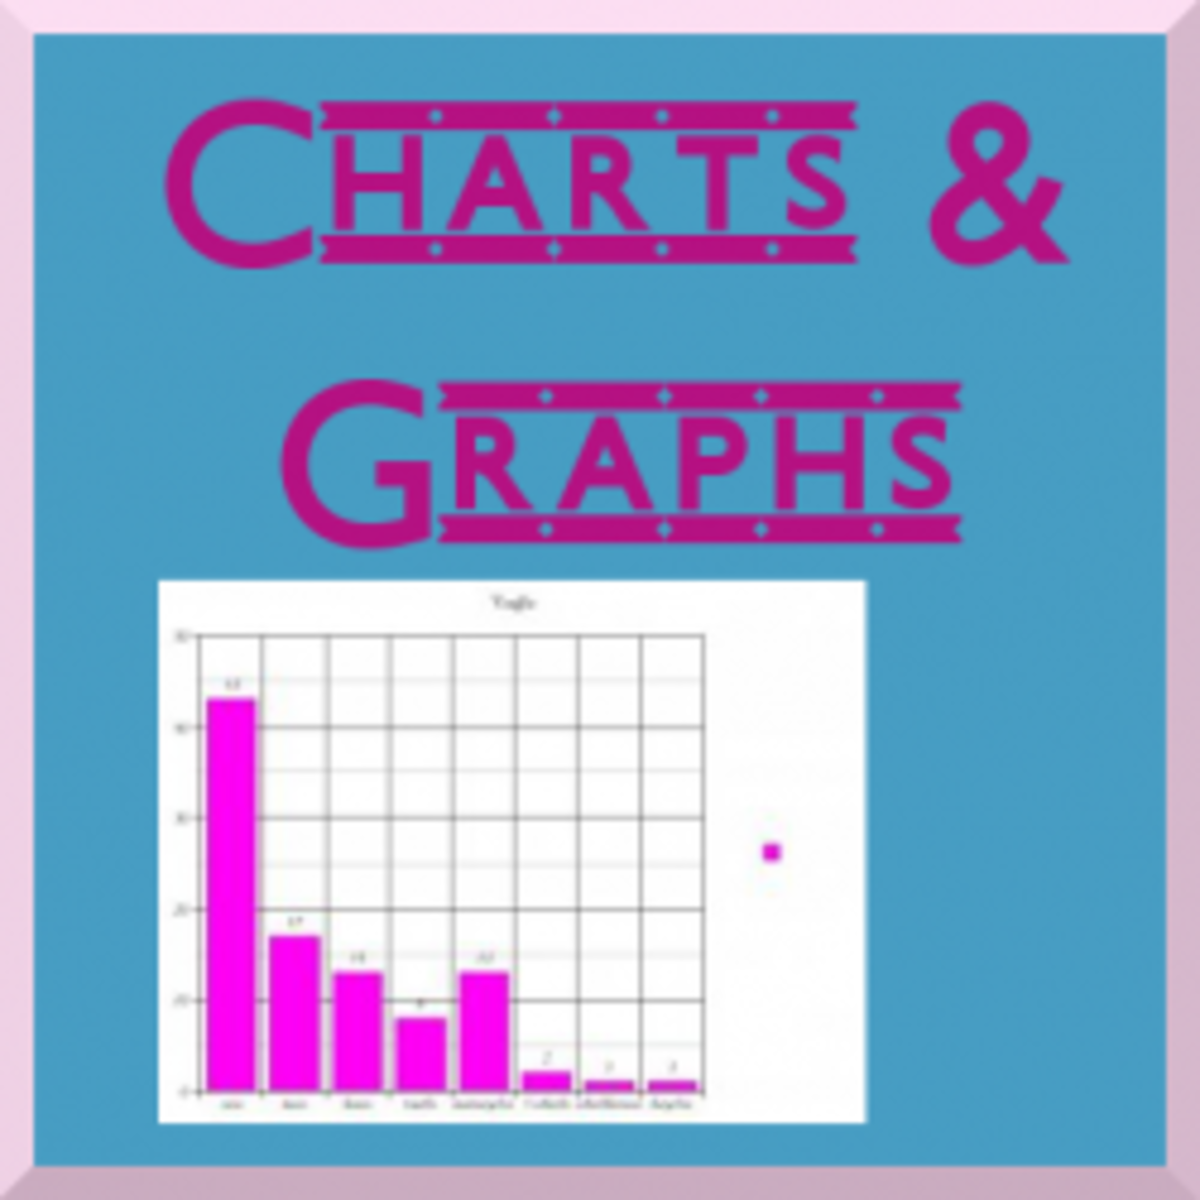 Charts and Graphs for Learning